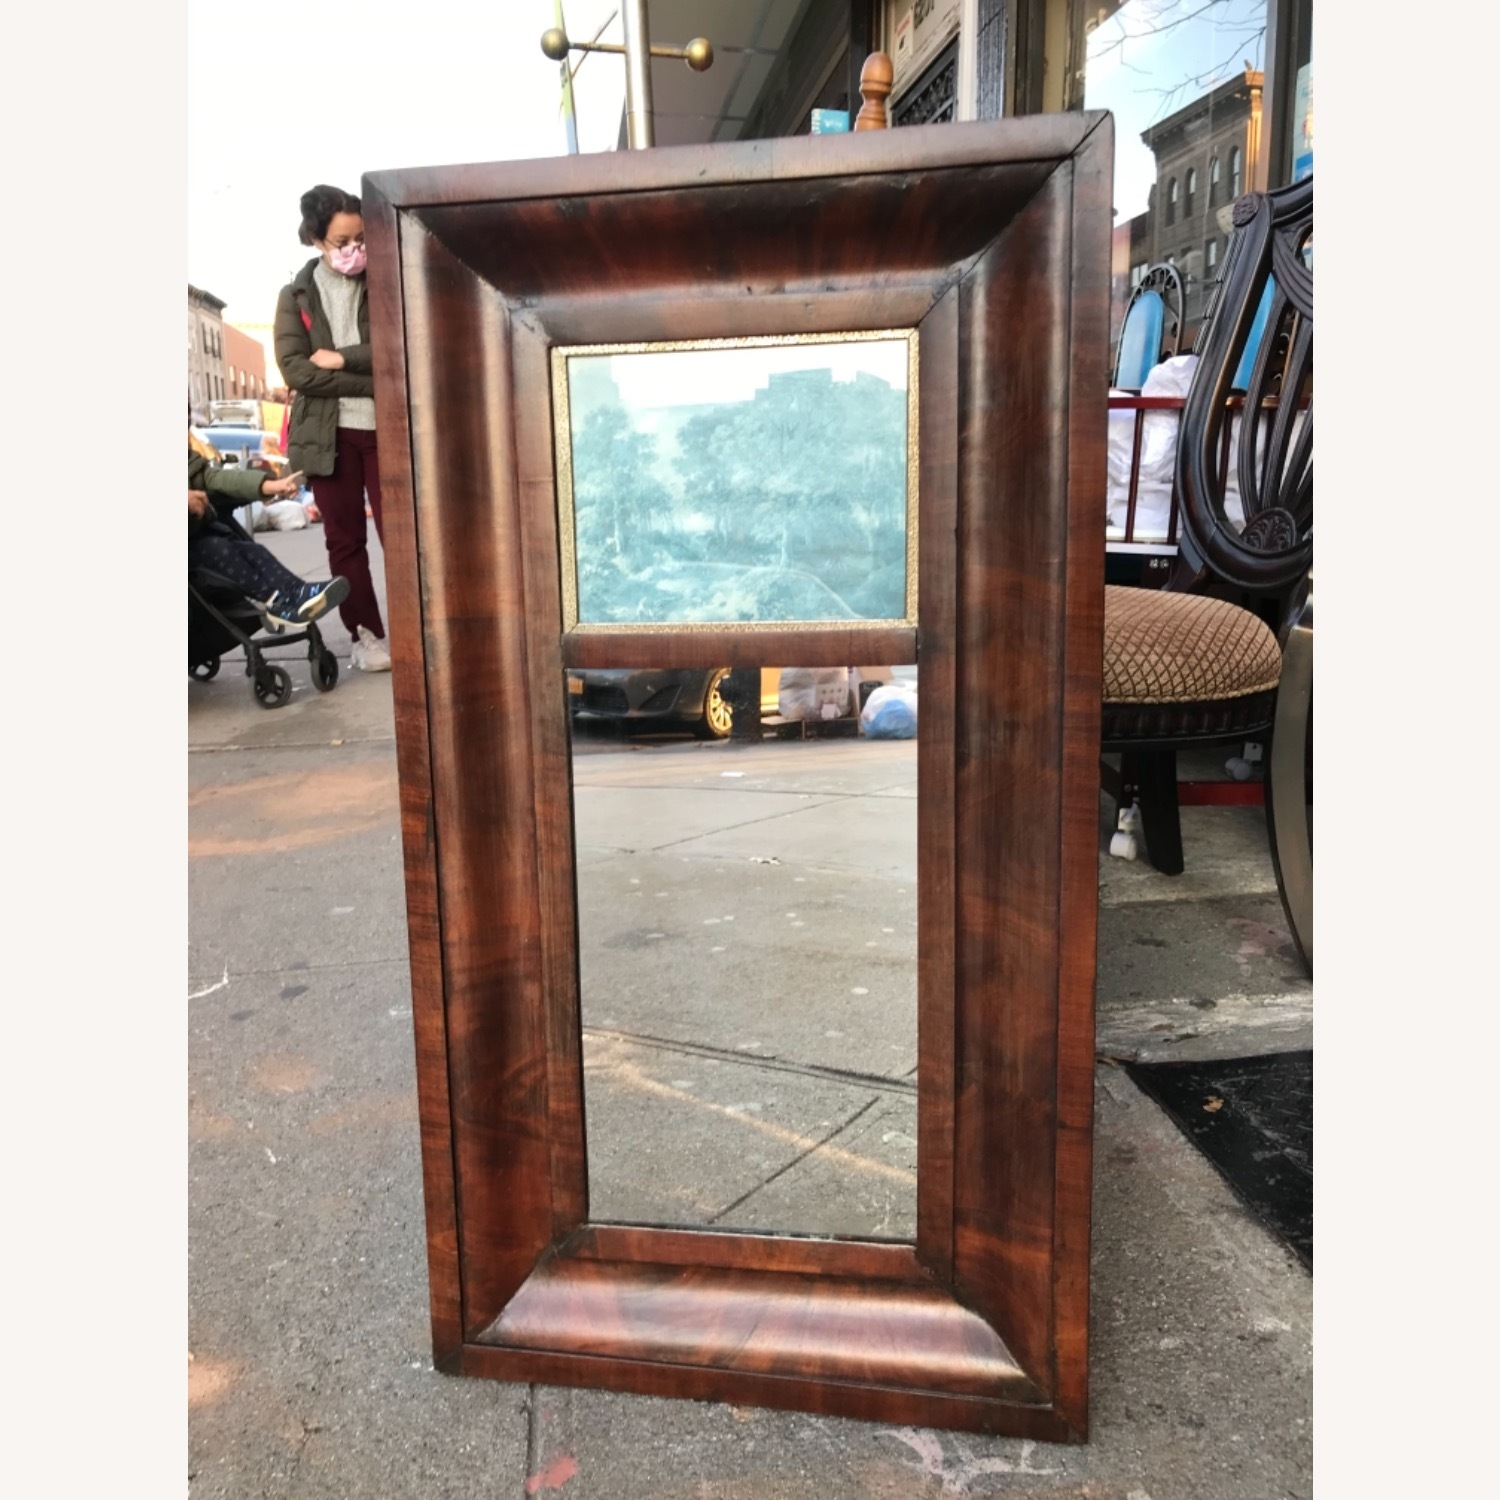 Antique 1900s Mahogany Framed Mirror w/ Picture - image-15